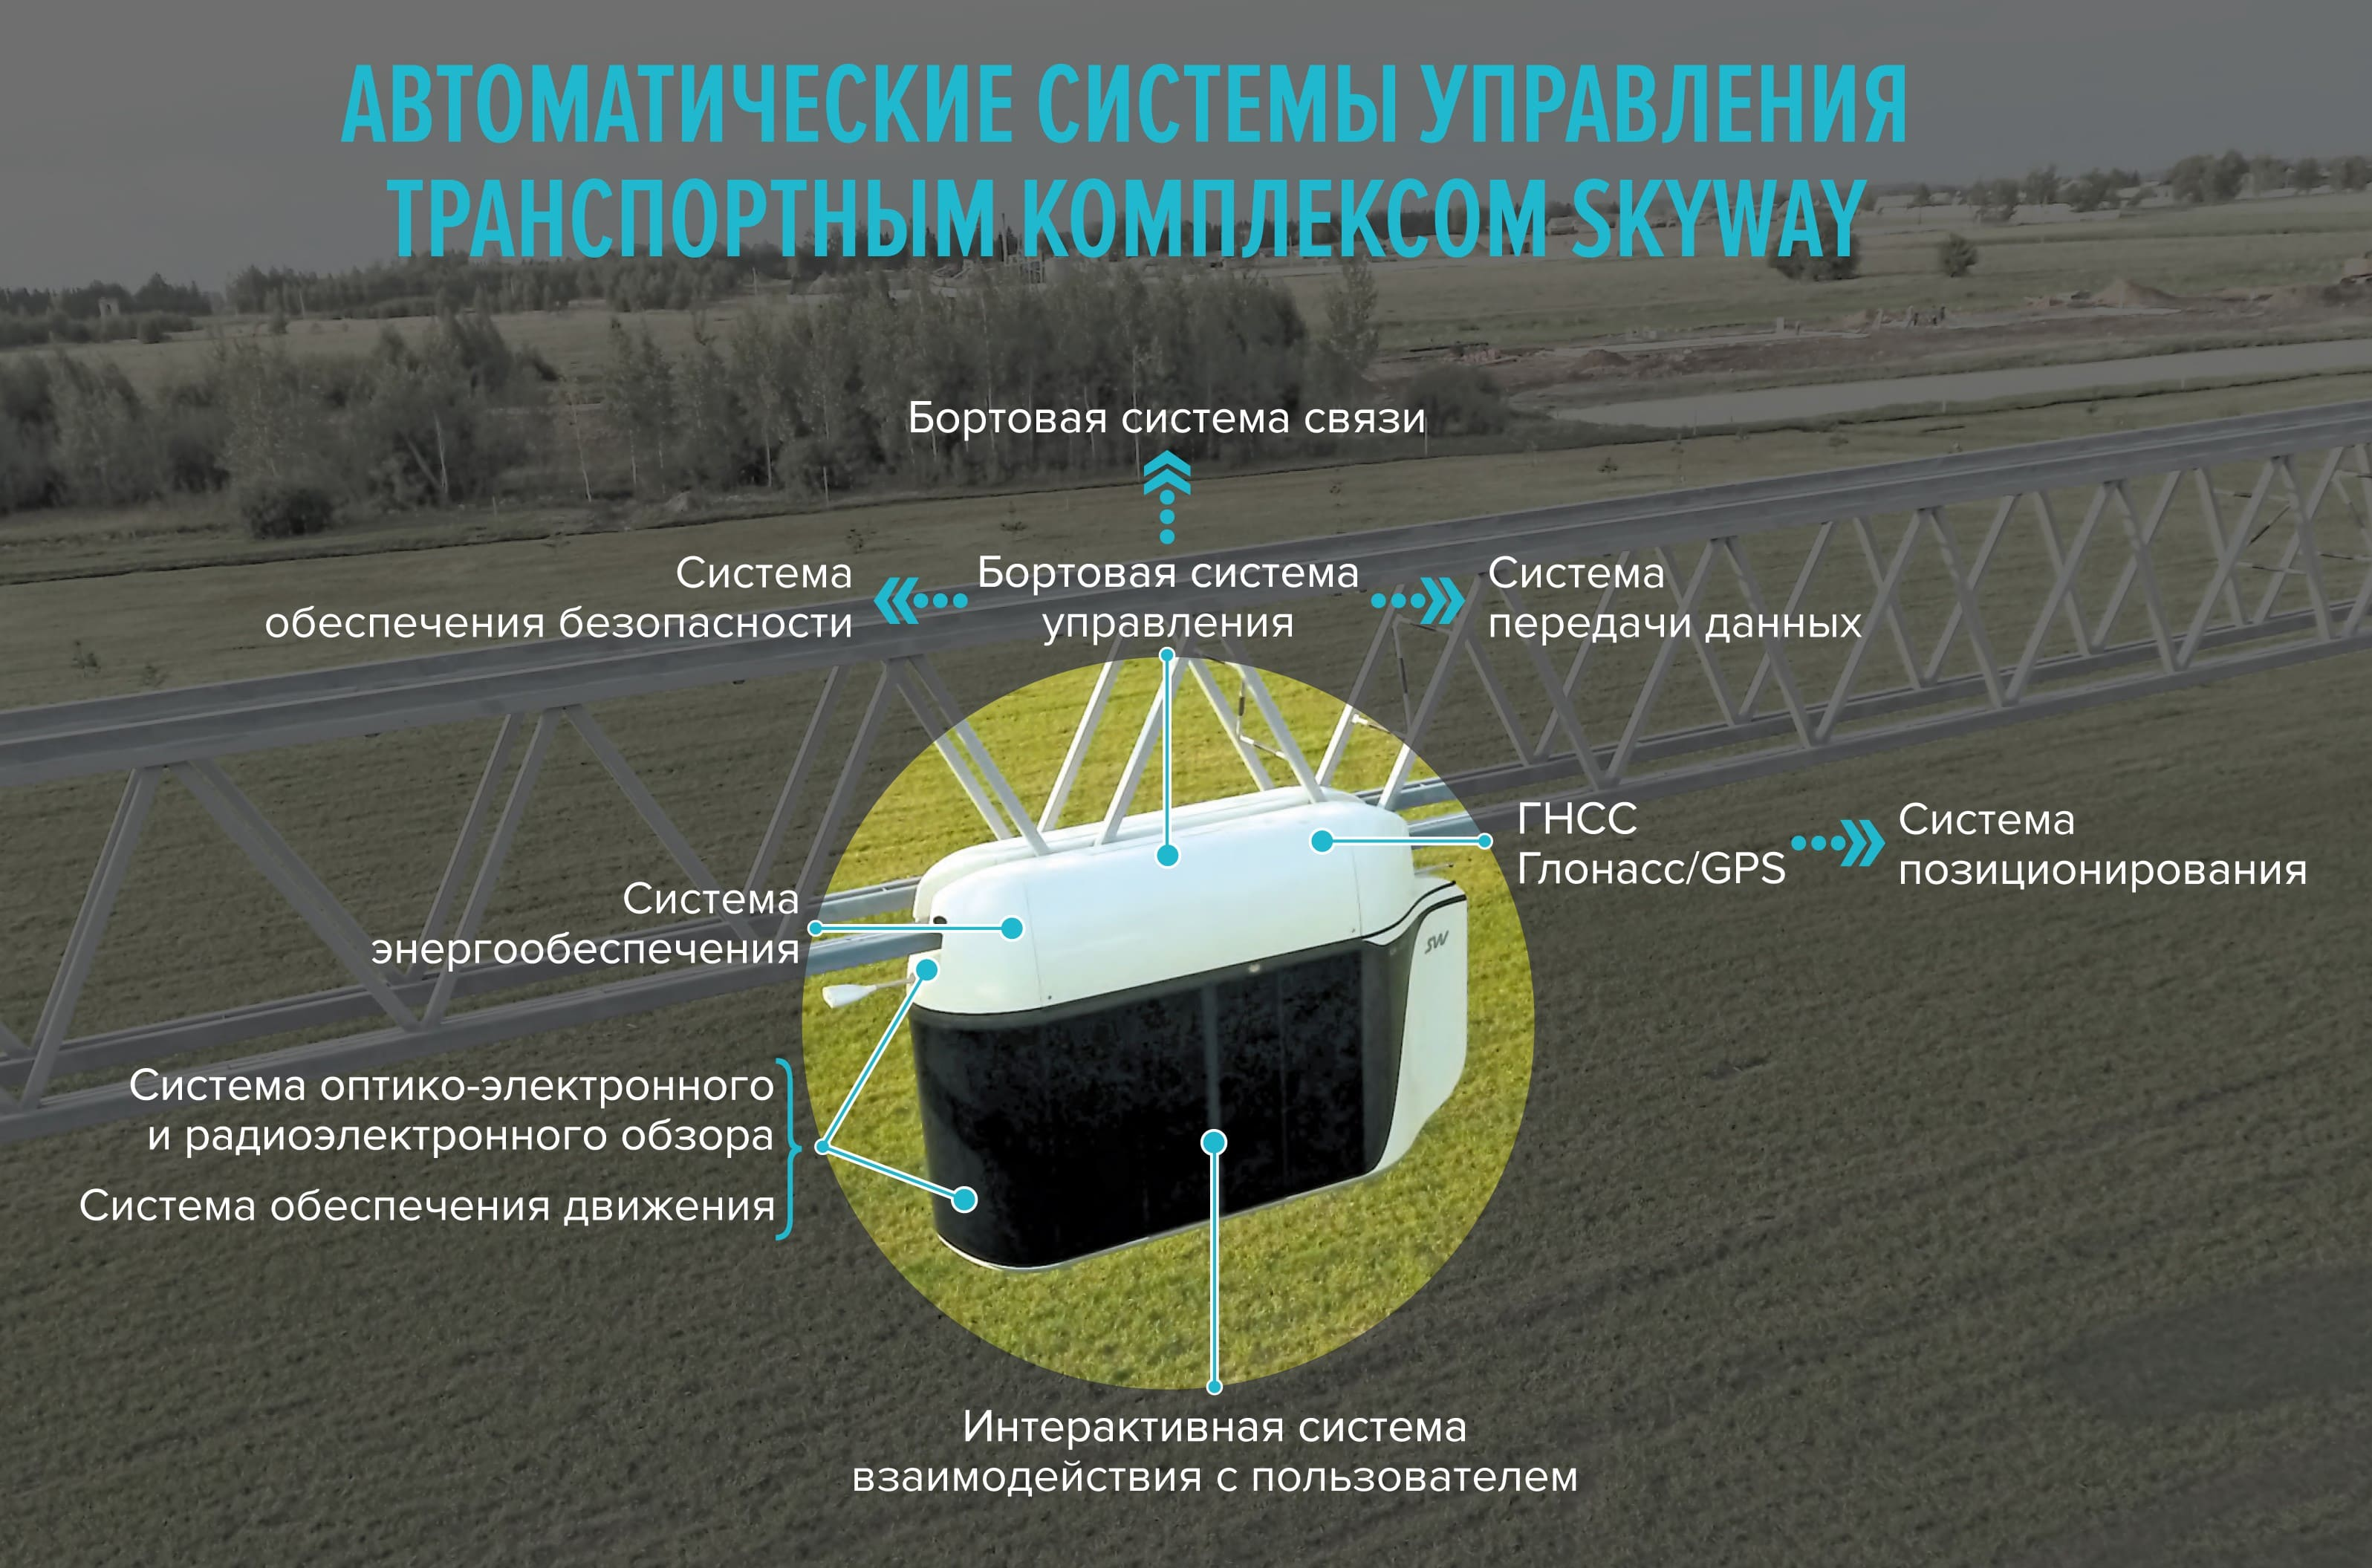 Automatic-systems-skyway